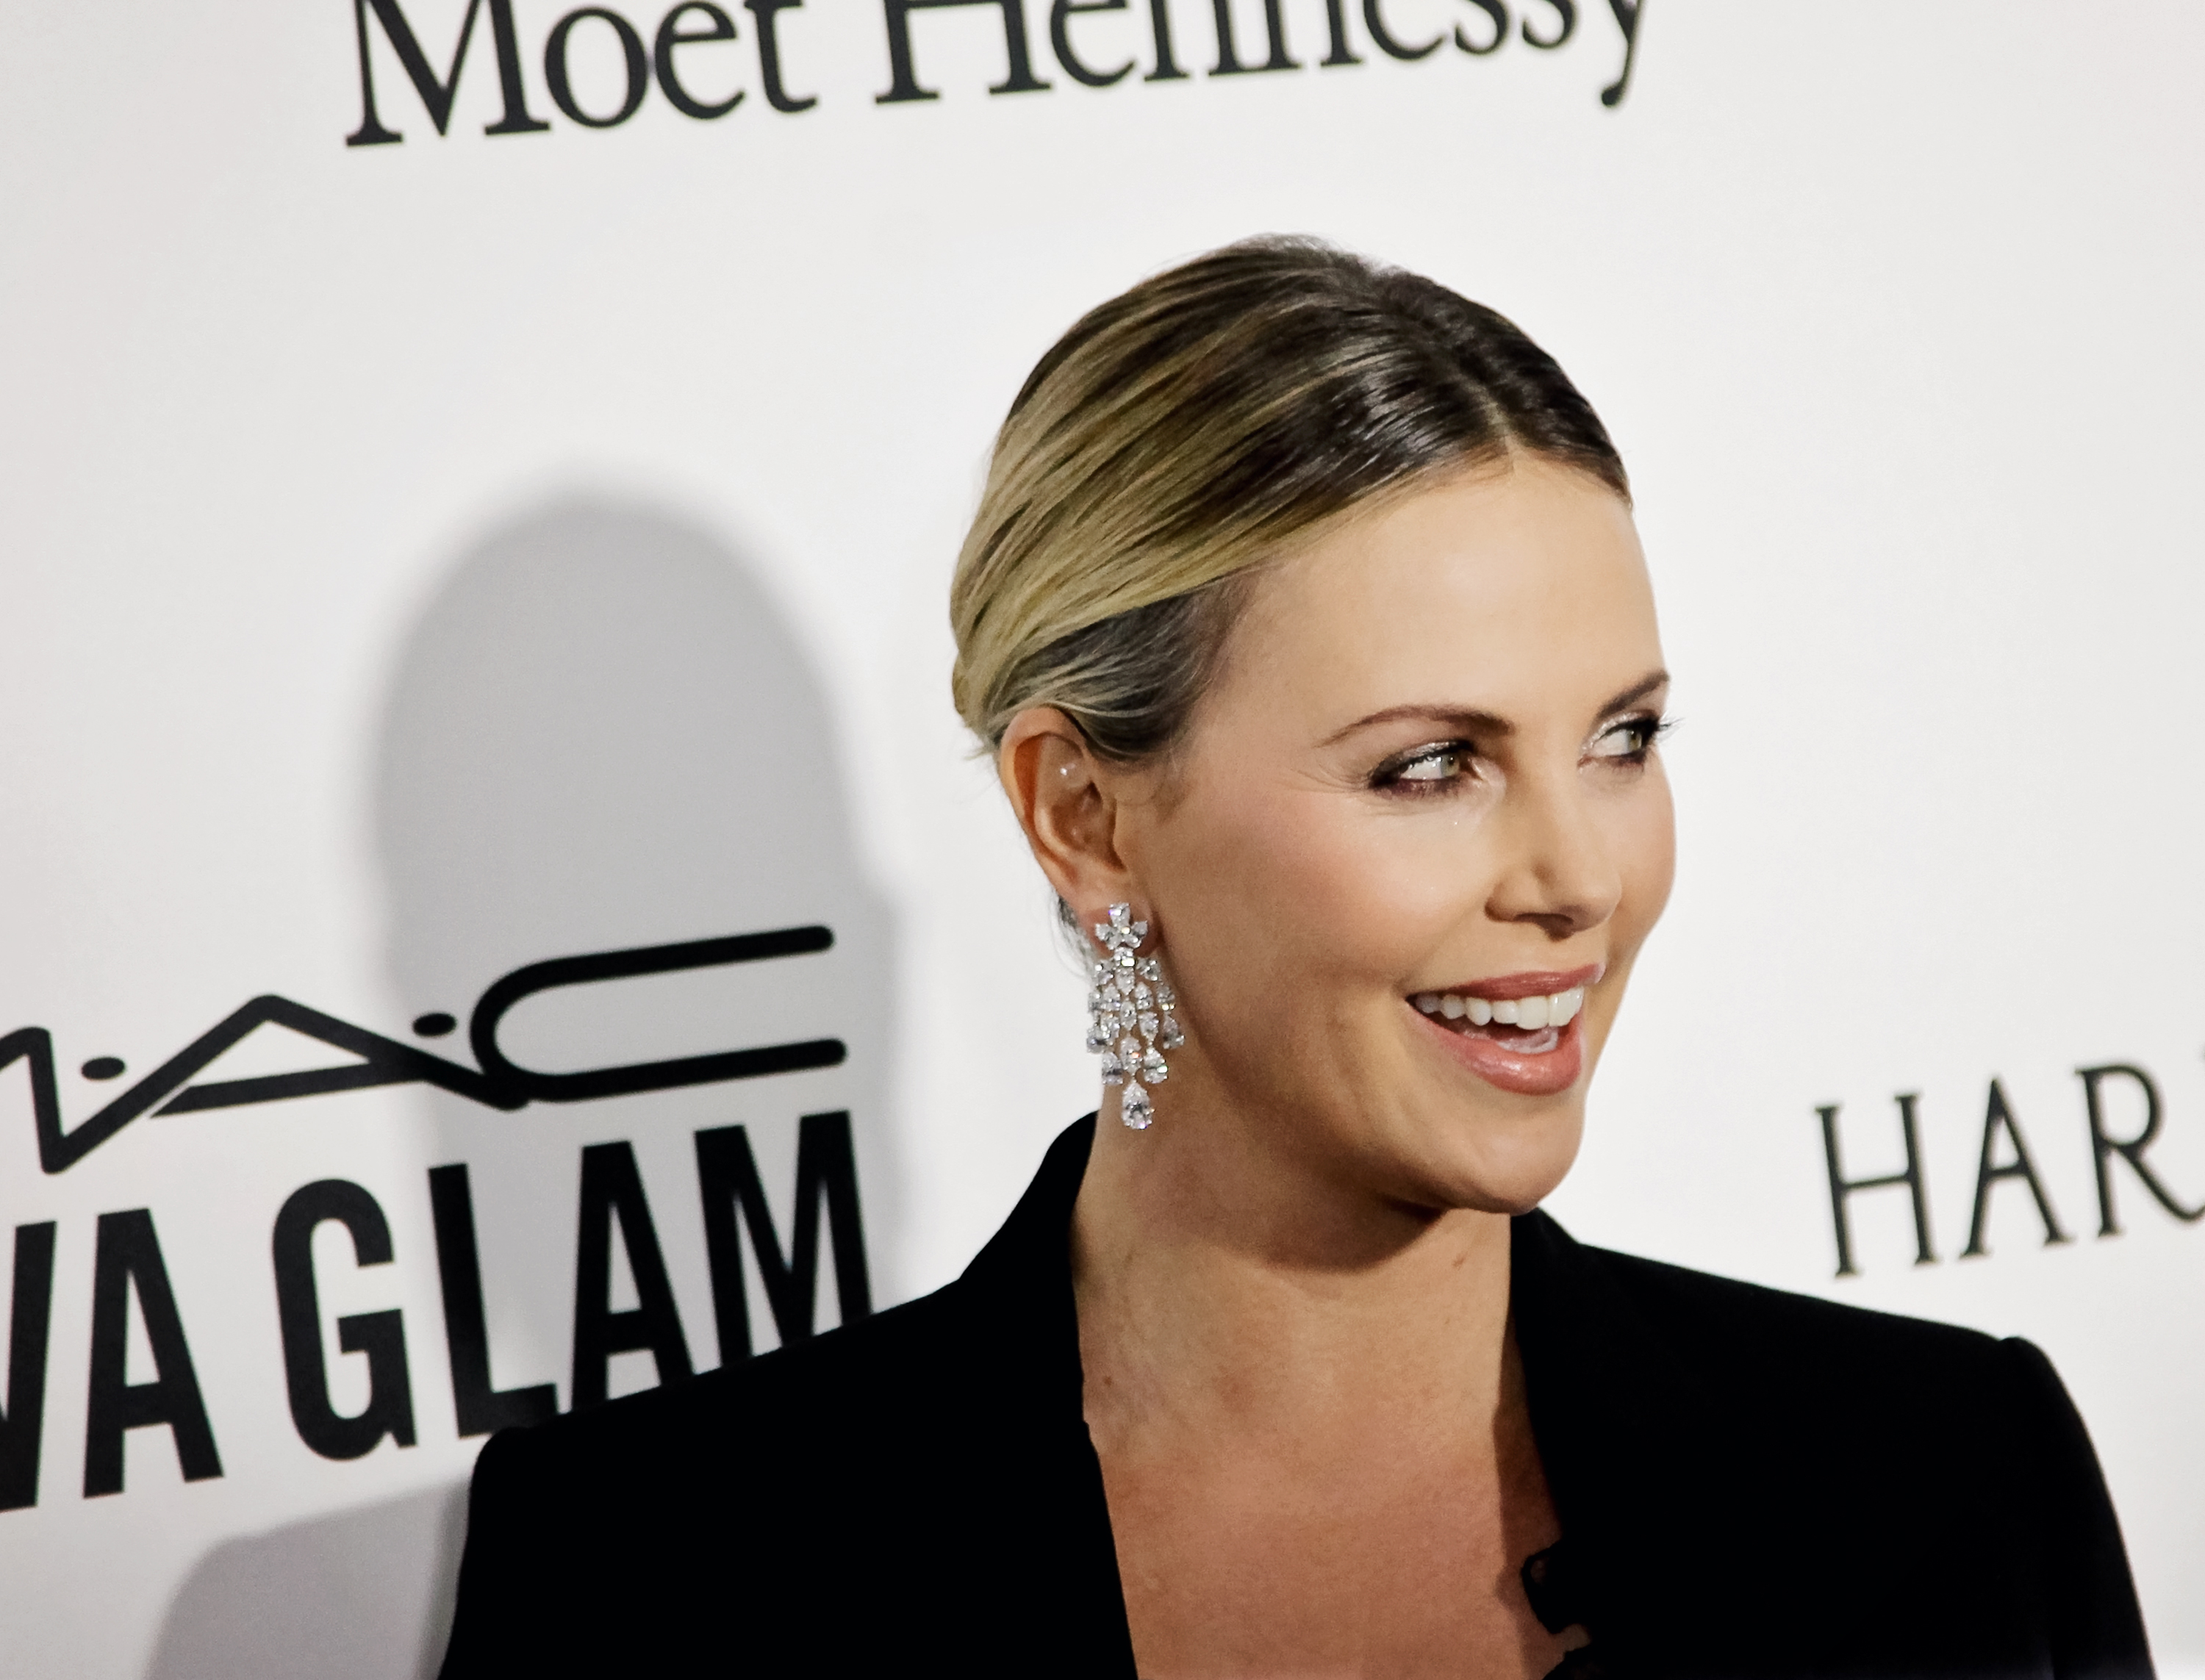 Charlize Theron looked unbelievably gorgeous on the red carpet after gaining 35 pounds for new role